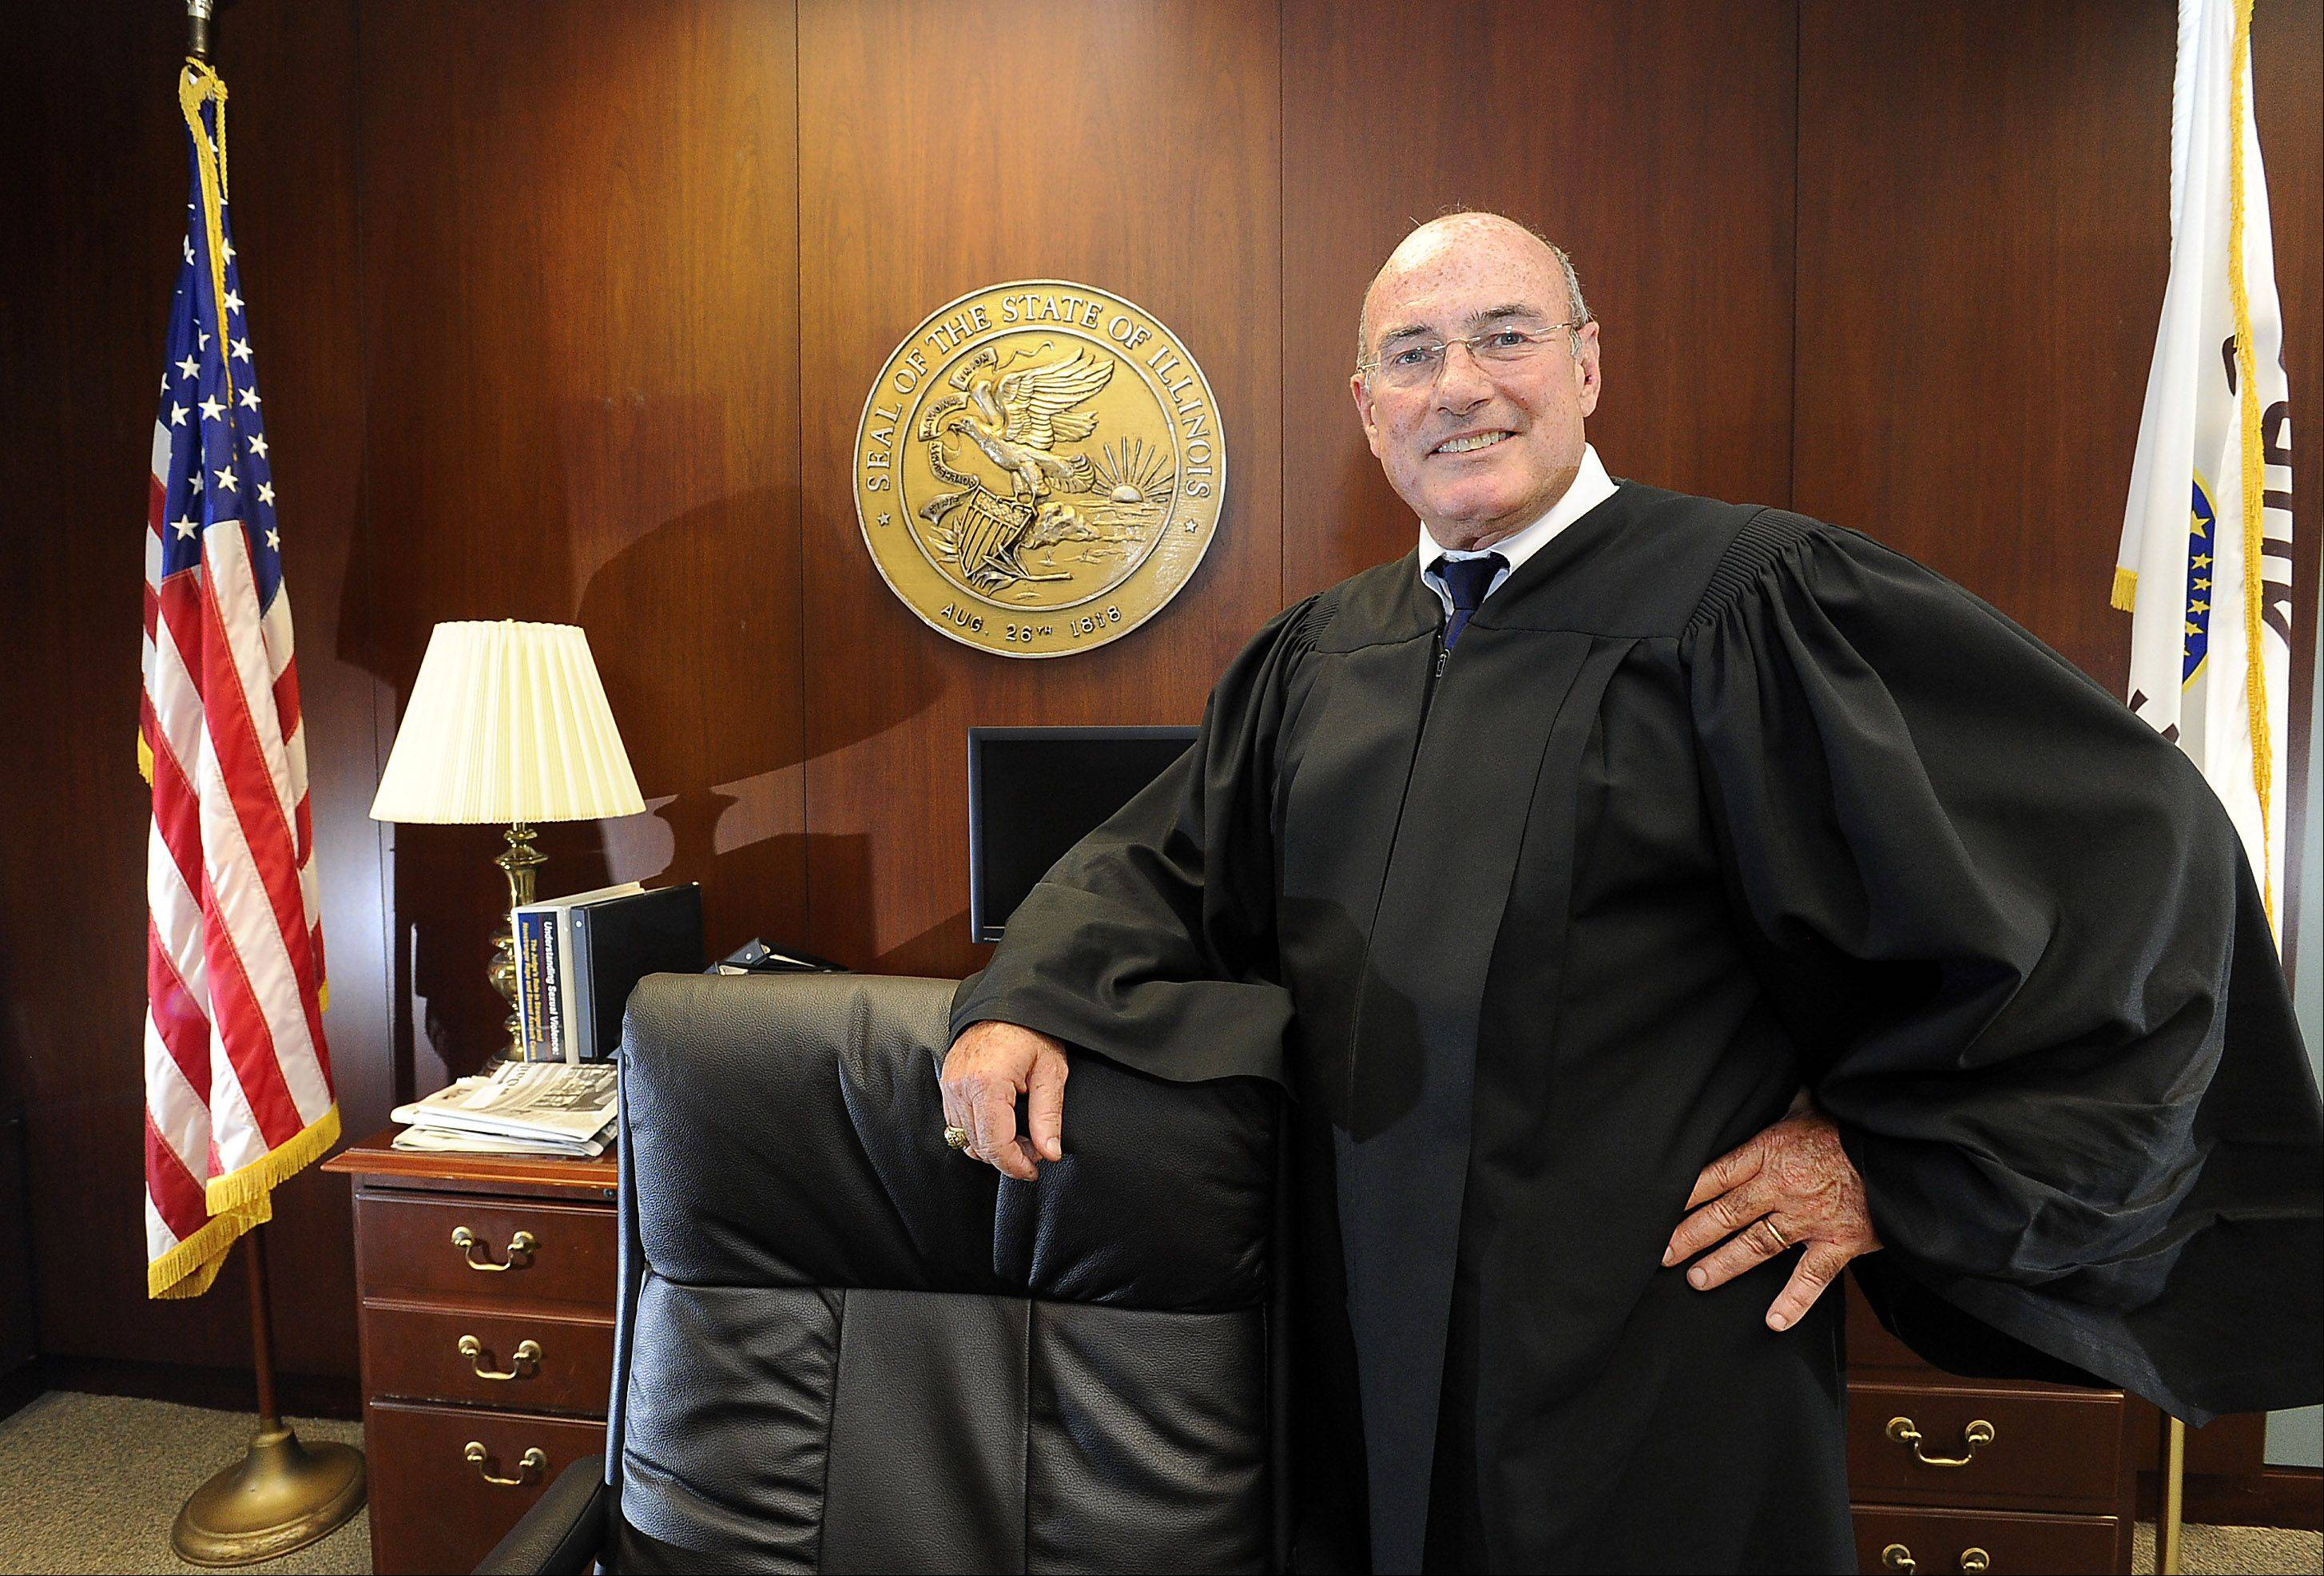 Cook County Associate Judge James P. Etchingham, An Arlington Heights  Resident Who Frequently Rode